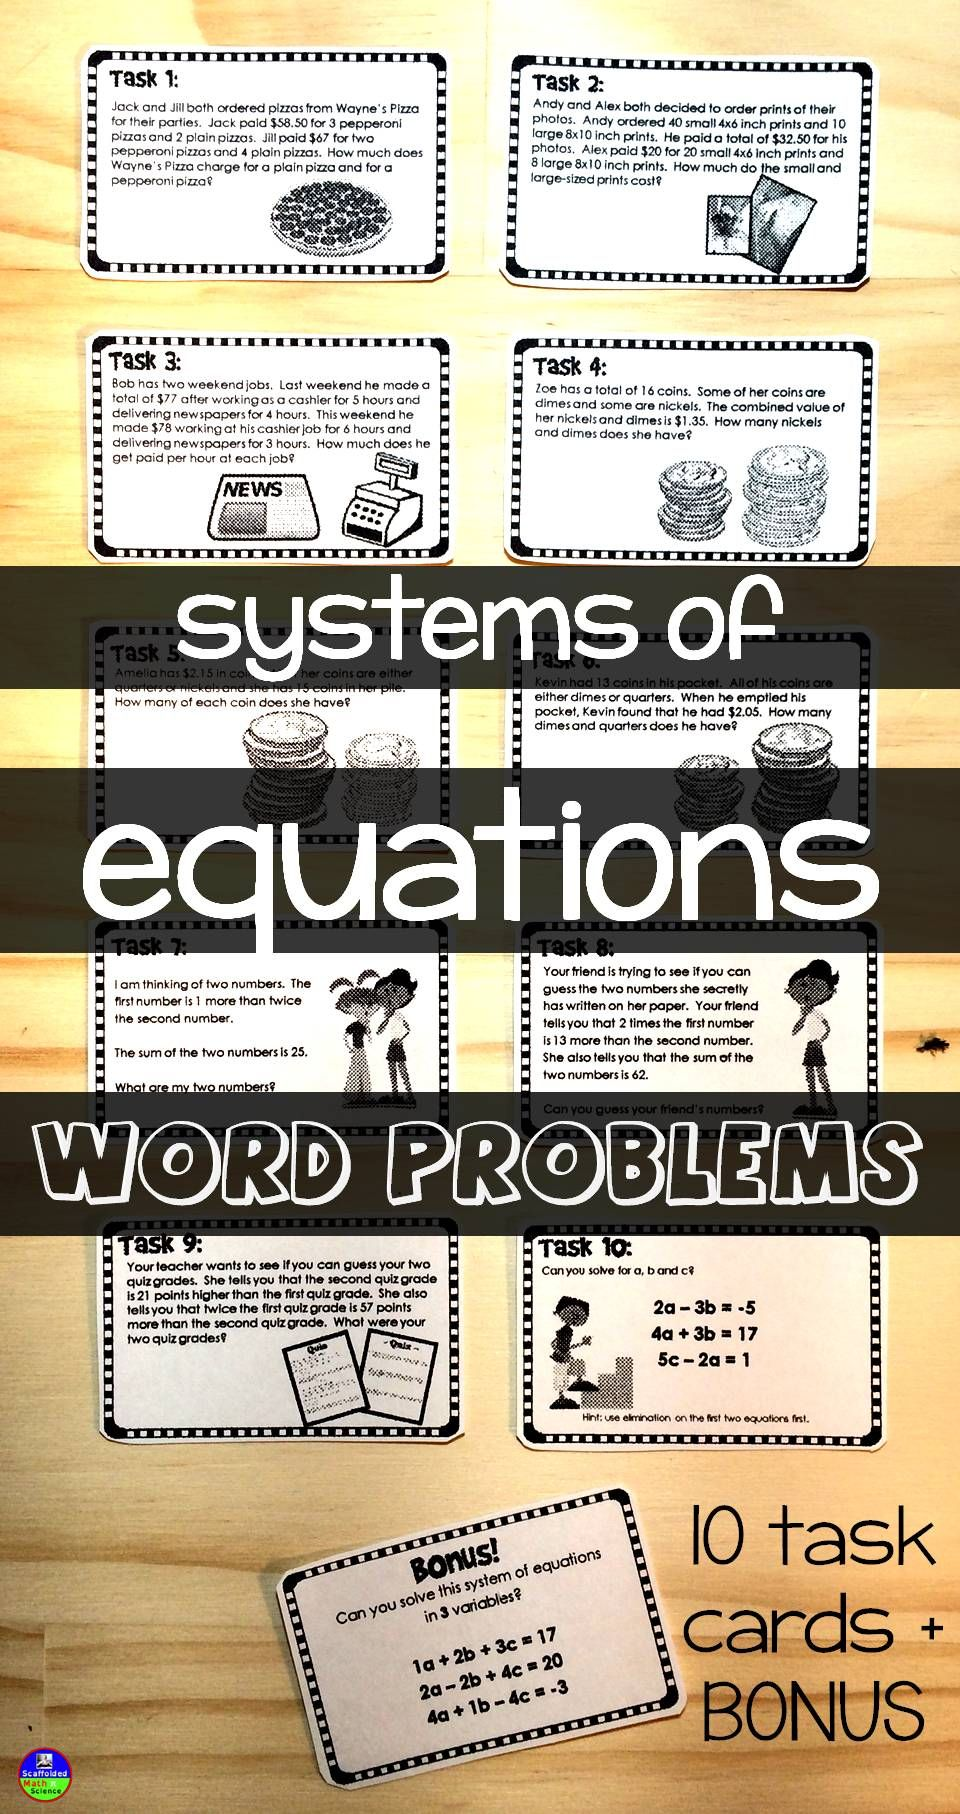 Systems of Equations WORD PROBLEMS Word problems